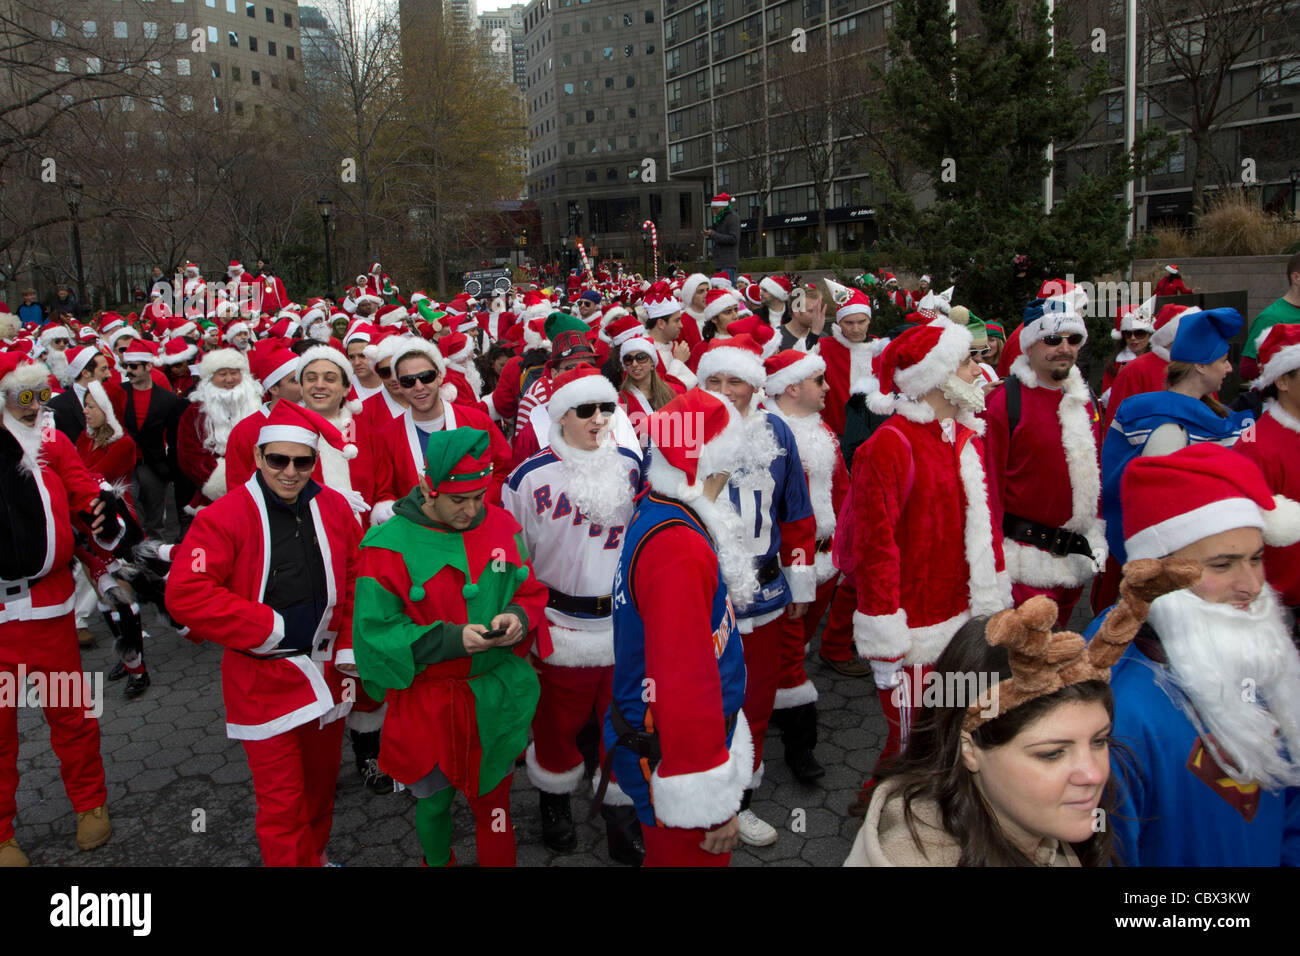 Thousands dressed as Santa Claus converge on New York's World Financial Center on December 10 2011 for Santacon - Stock Image